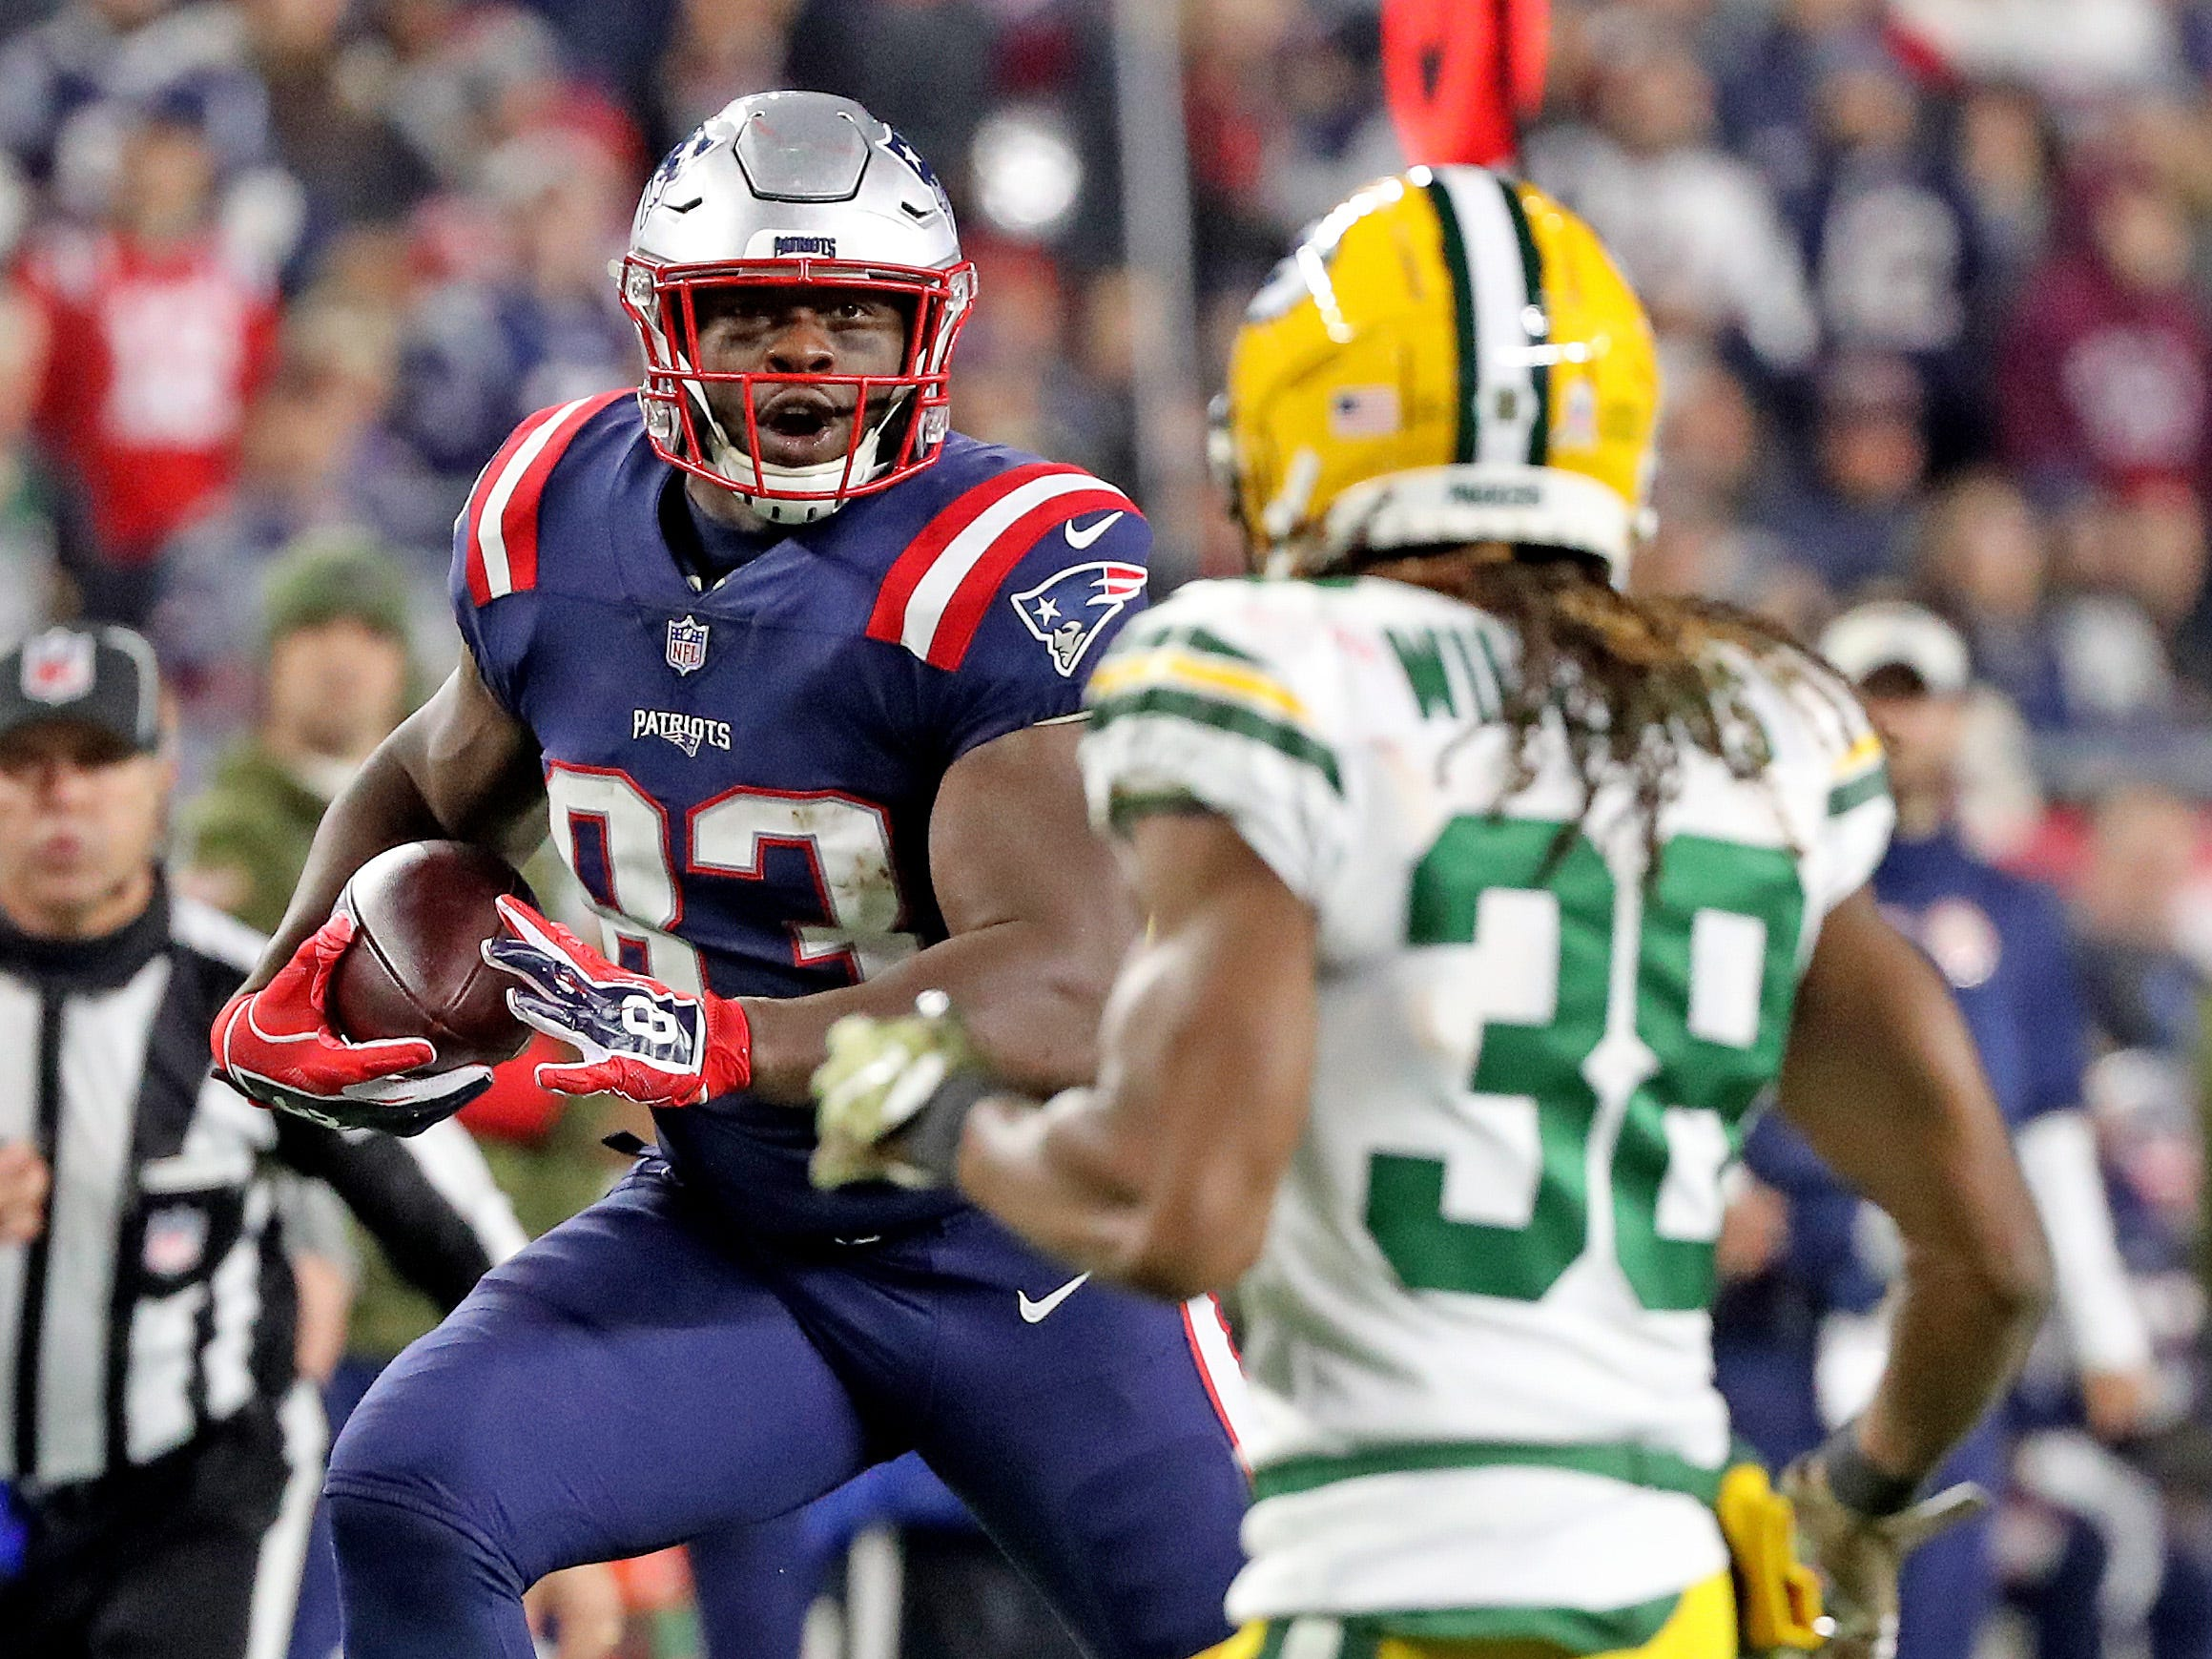 Green Bay Packers cornerback Tramon Williams (38) closes in on tight end Dwayne Allen (83) against the New England Patriots Sunday, November 4, 2018 at Gillette Stadium in Foxborough, Mass.